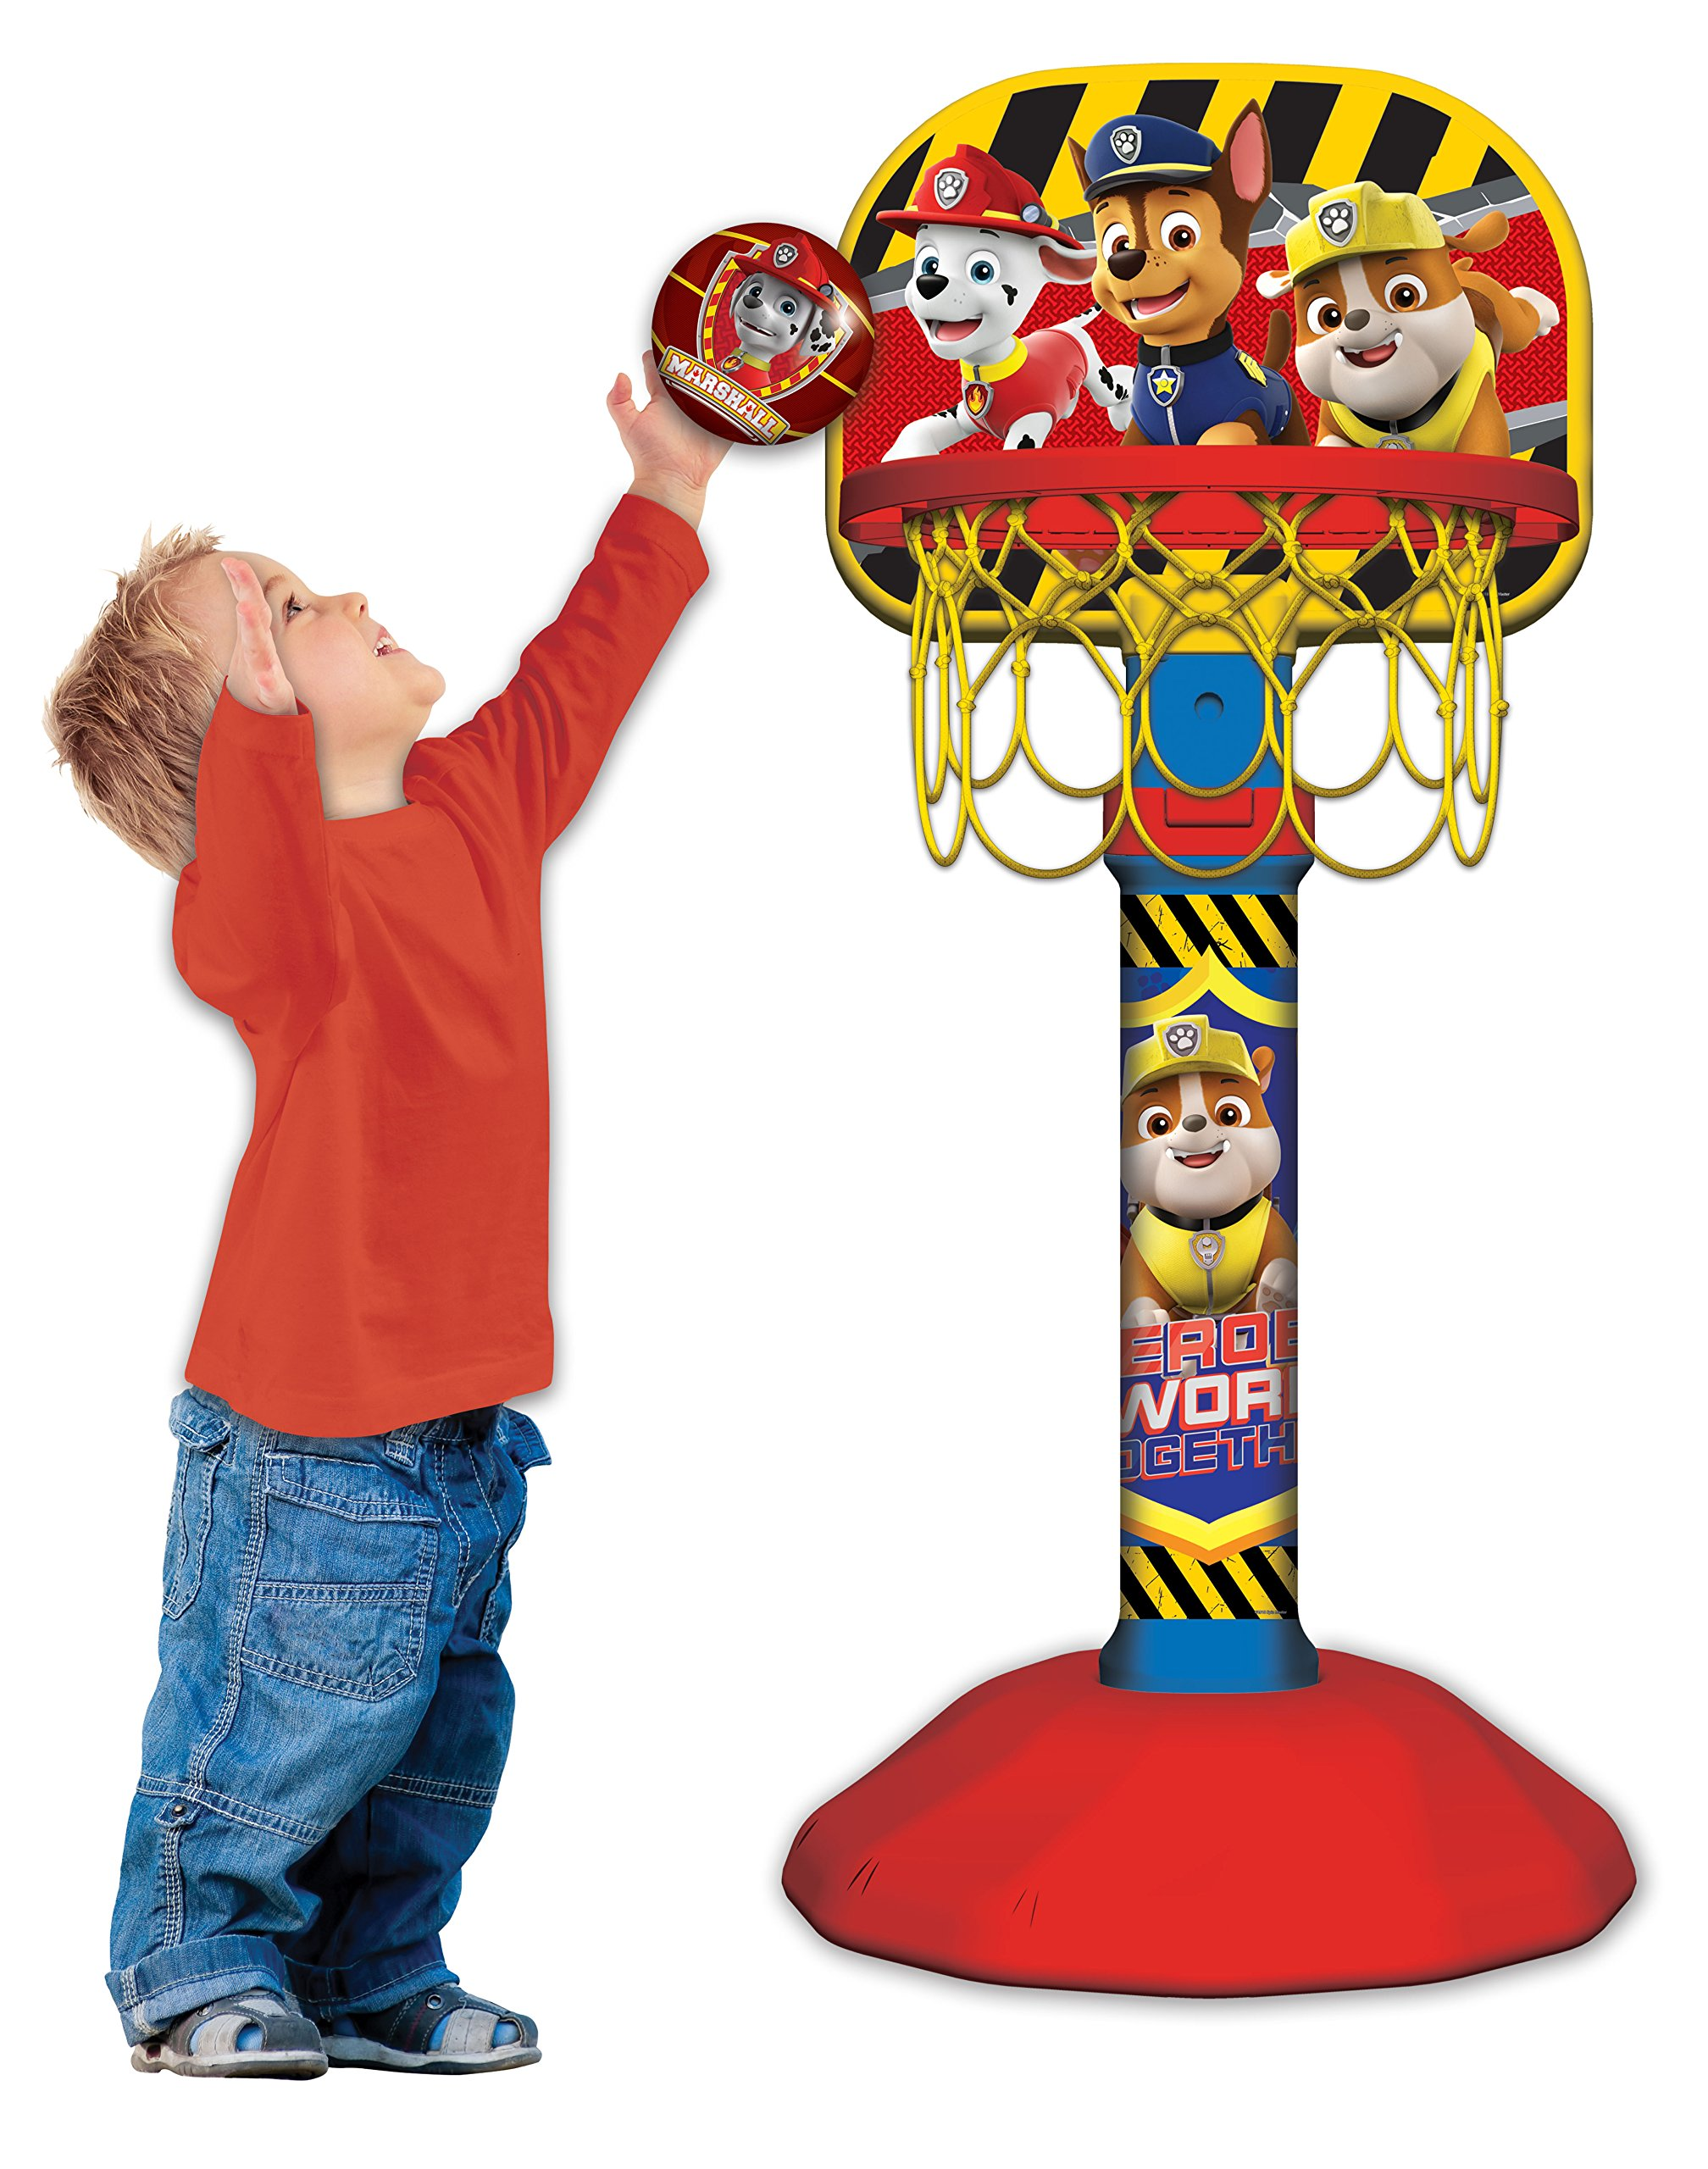 Paw Patrol Grow with Me Basketball Set for Kids | Adjustable Stand and Ball by Paw Patrol